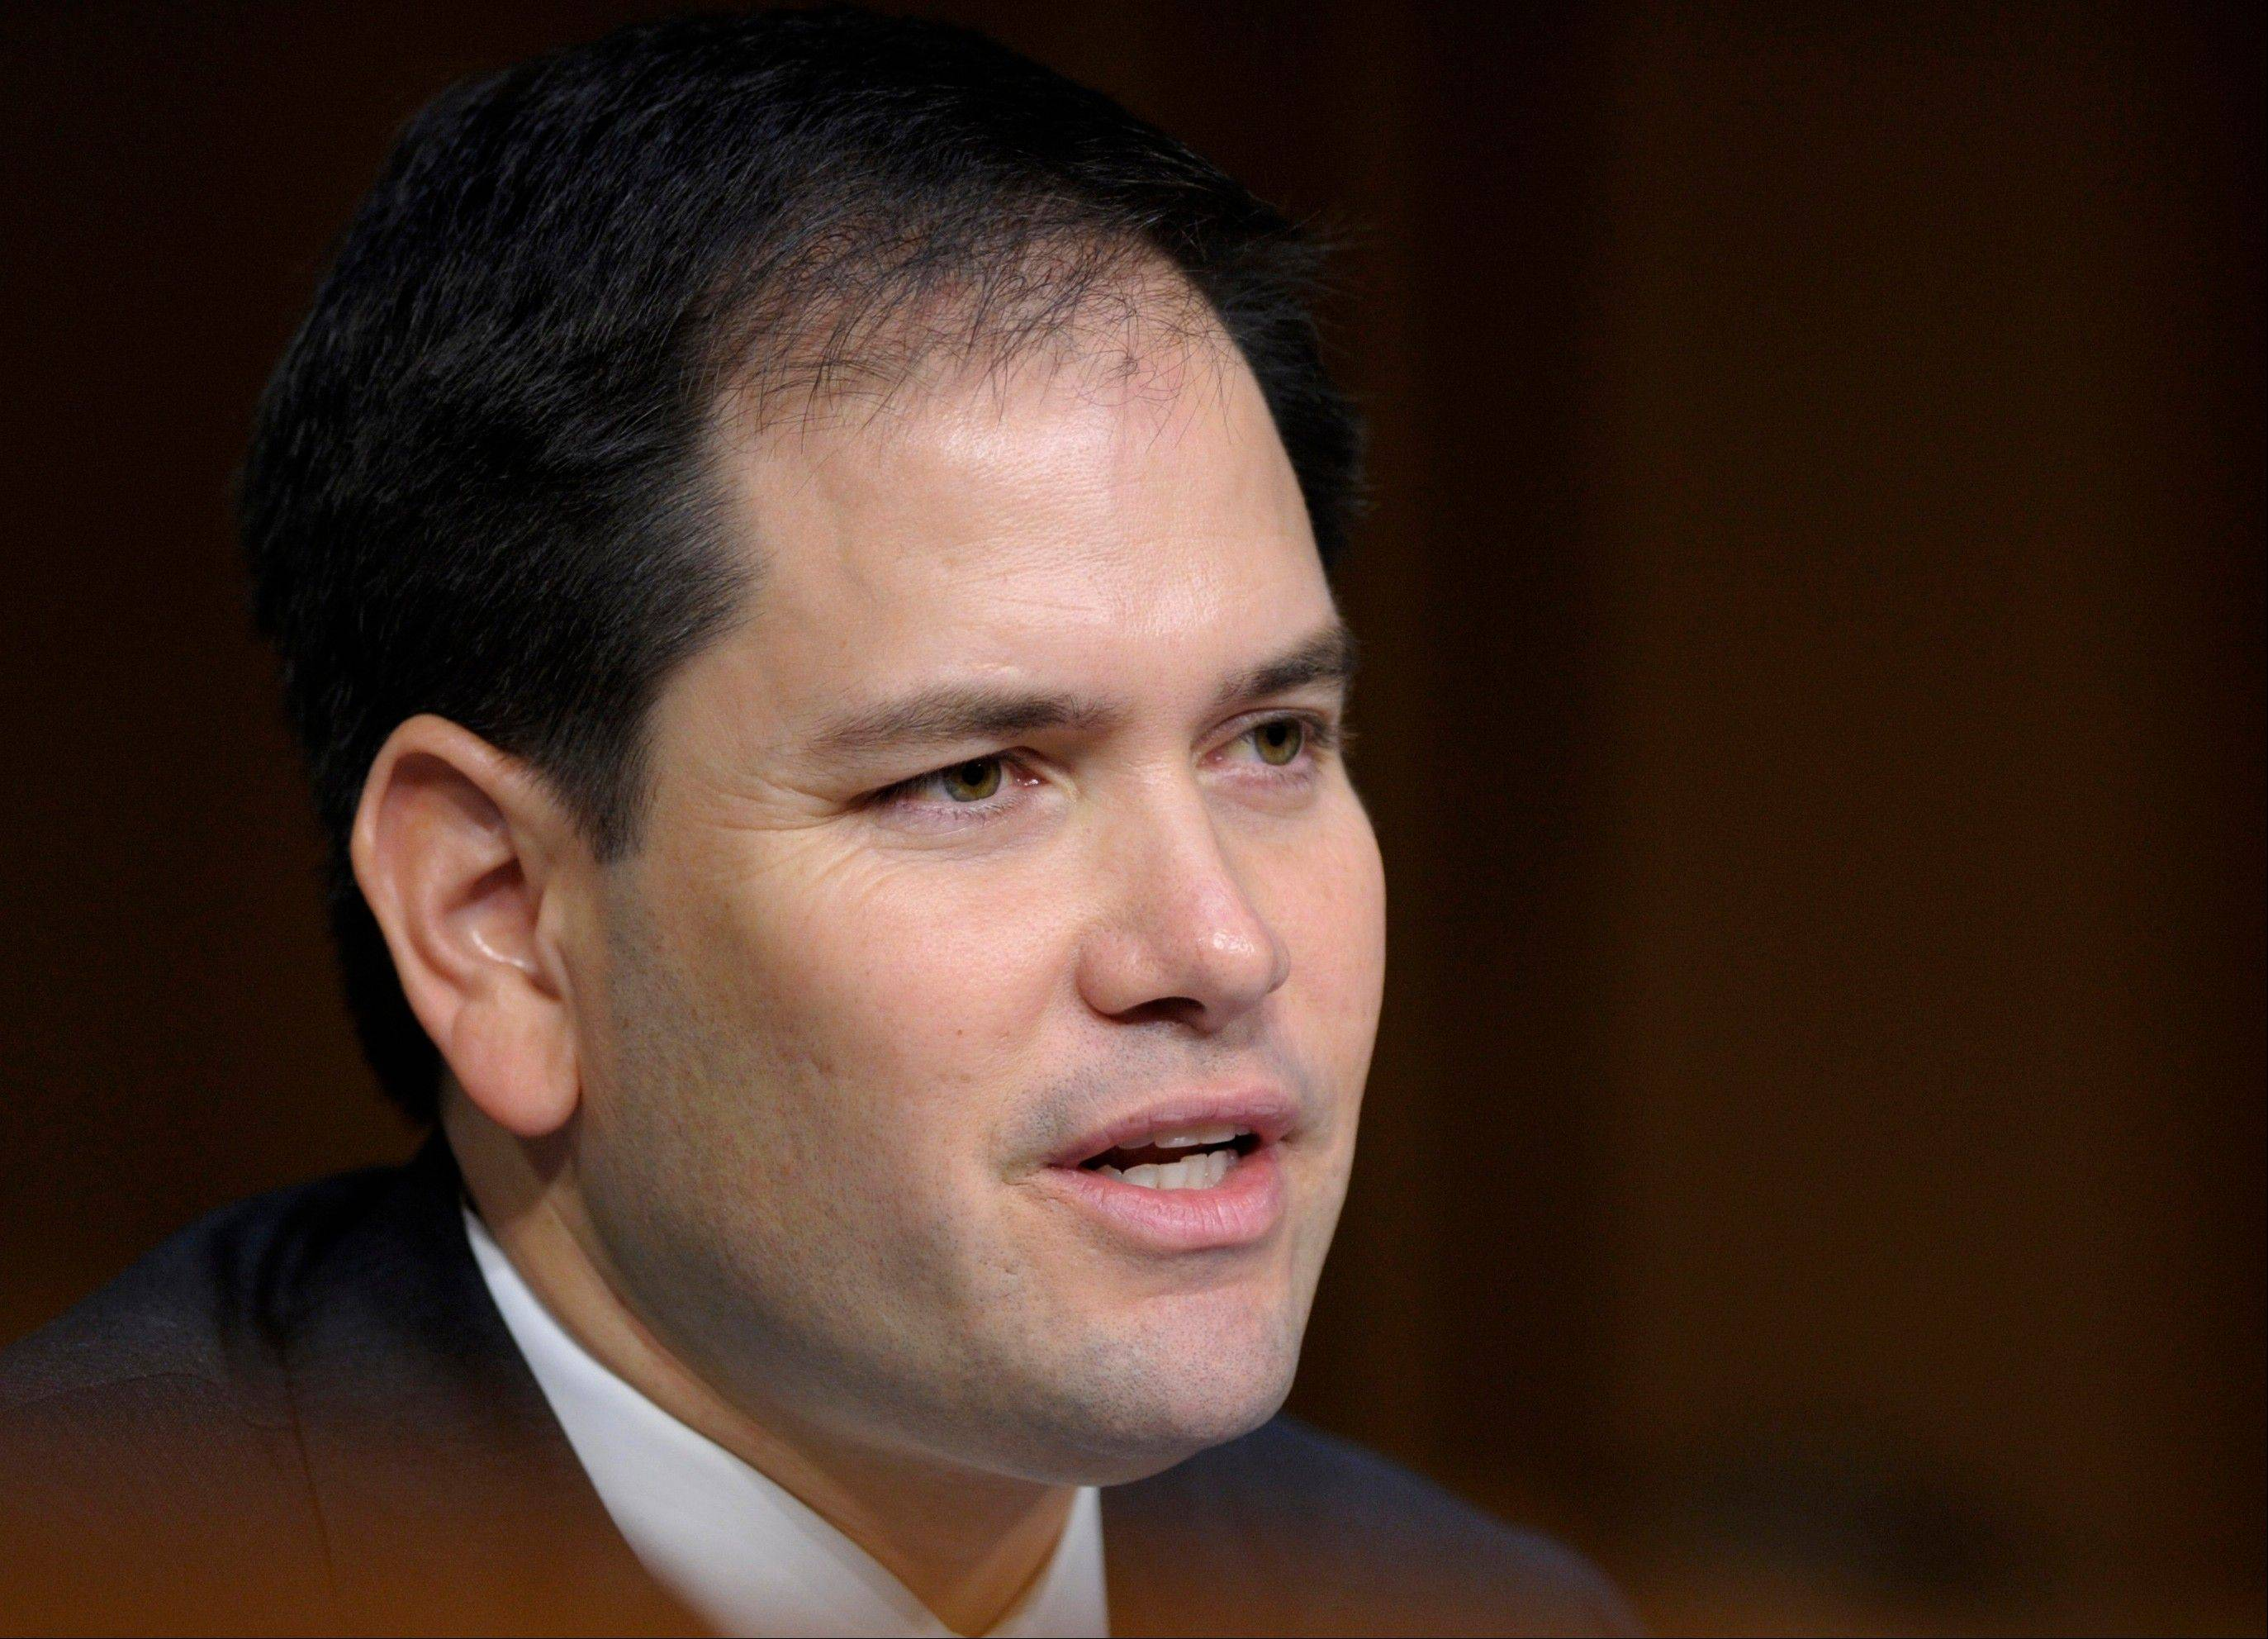 Sen. Marco Rubio, a Florida Republican, has warned he was not ready to lend his name -- and political clout -- to an immigration deal without hashing out all the details.